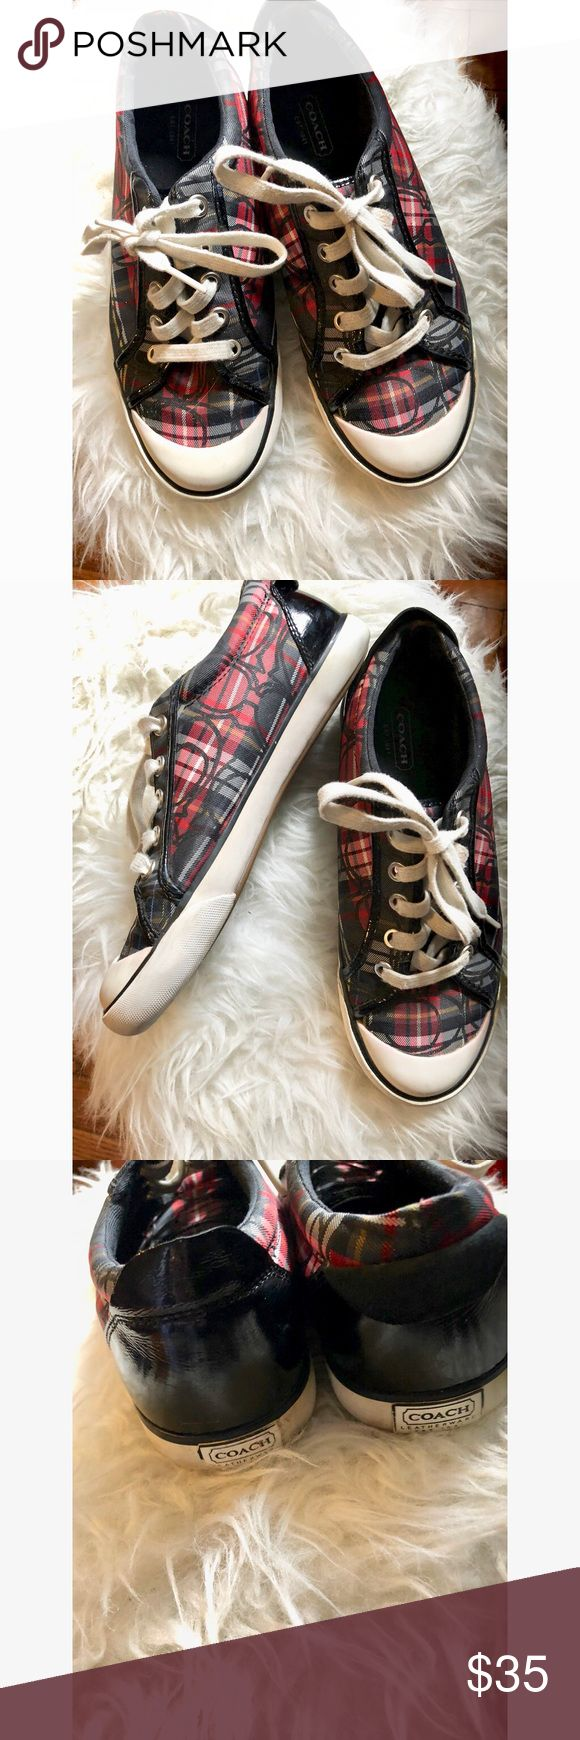 Coach Sneakers Plaid Red Black White Beautiful low top Coach Sneakers  Color: Black red white plaid  Condition: Used in good condition Size: 7 1/8 Coach Shoes Sneakers